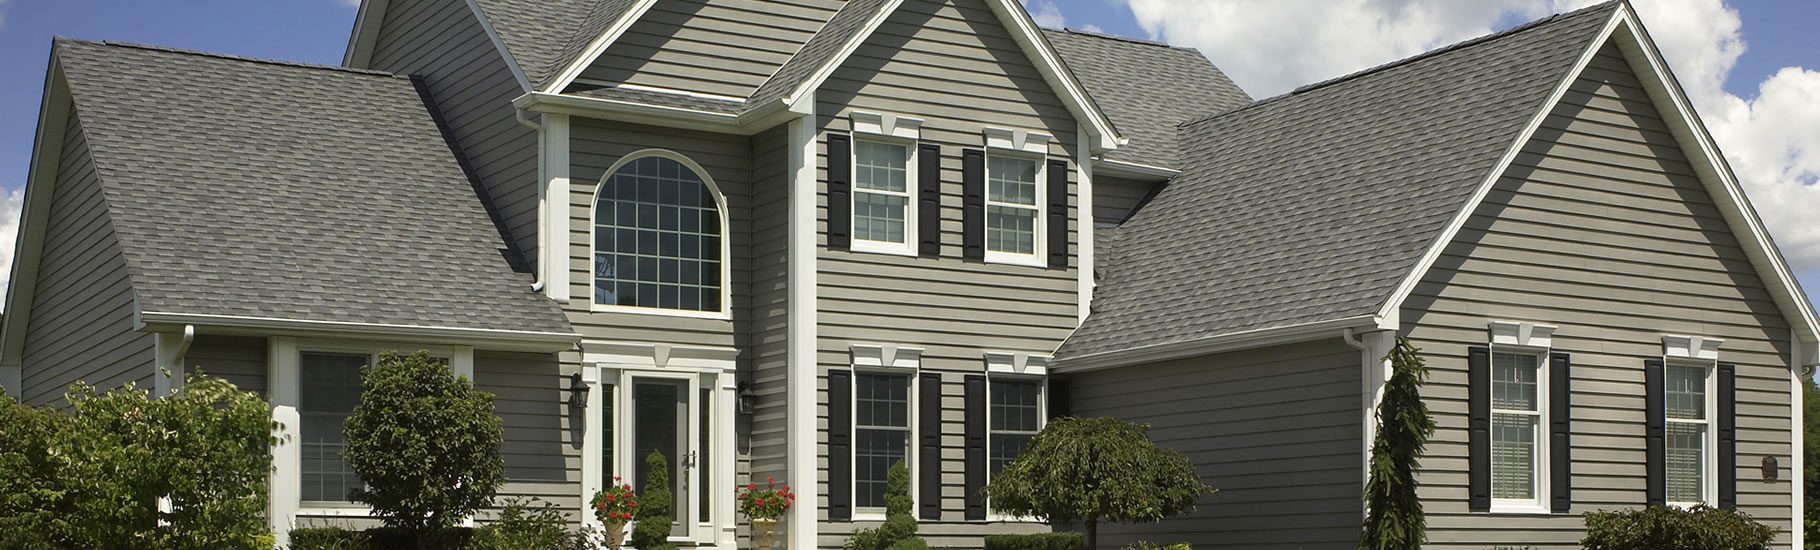 KOTT supplies and installs a variety of siding products